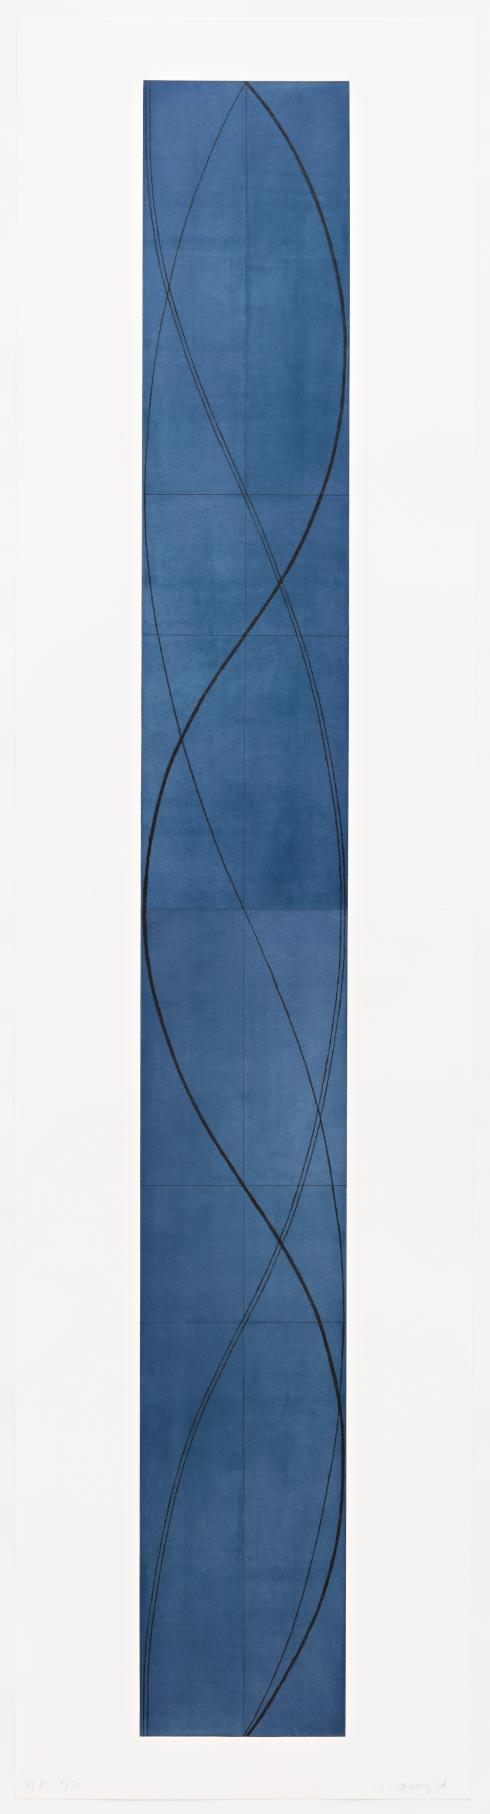 Robert Mangold, Tall Column A, 2005